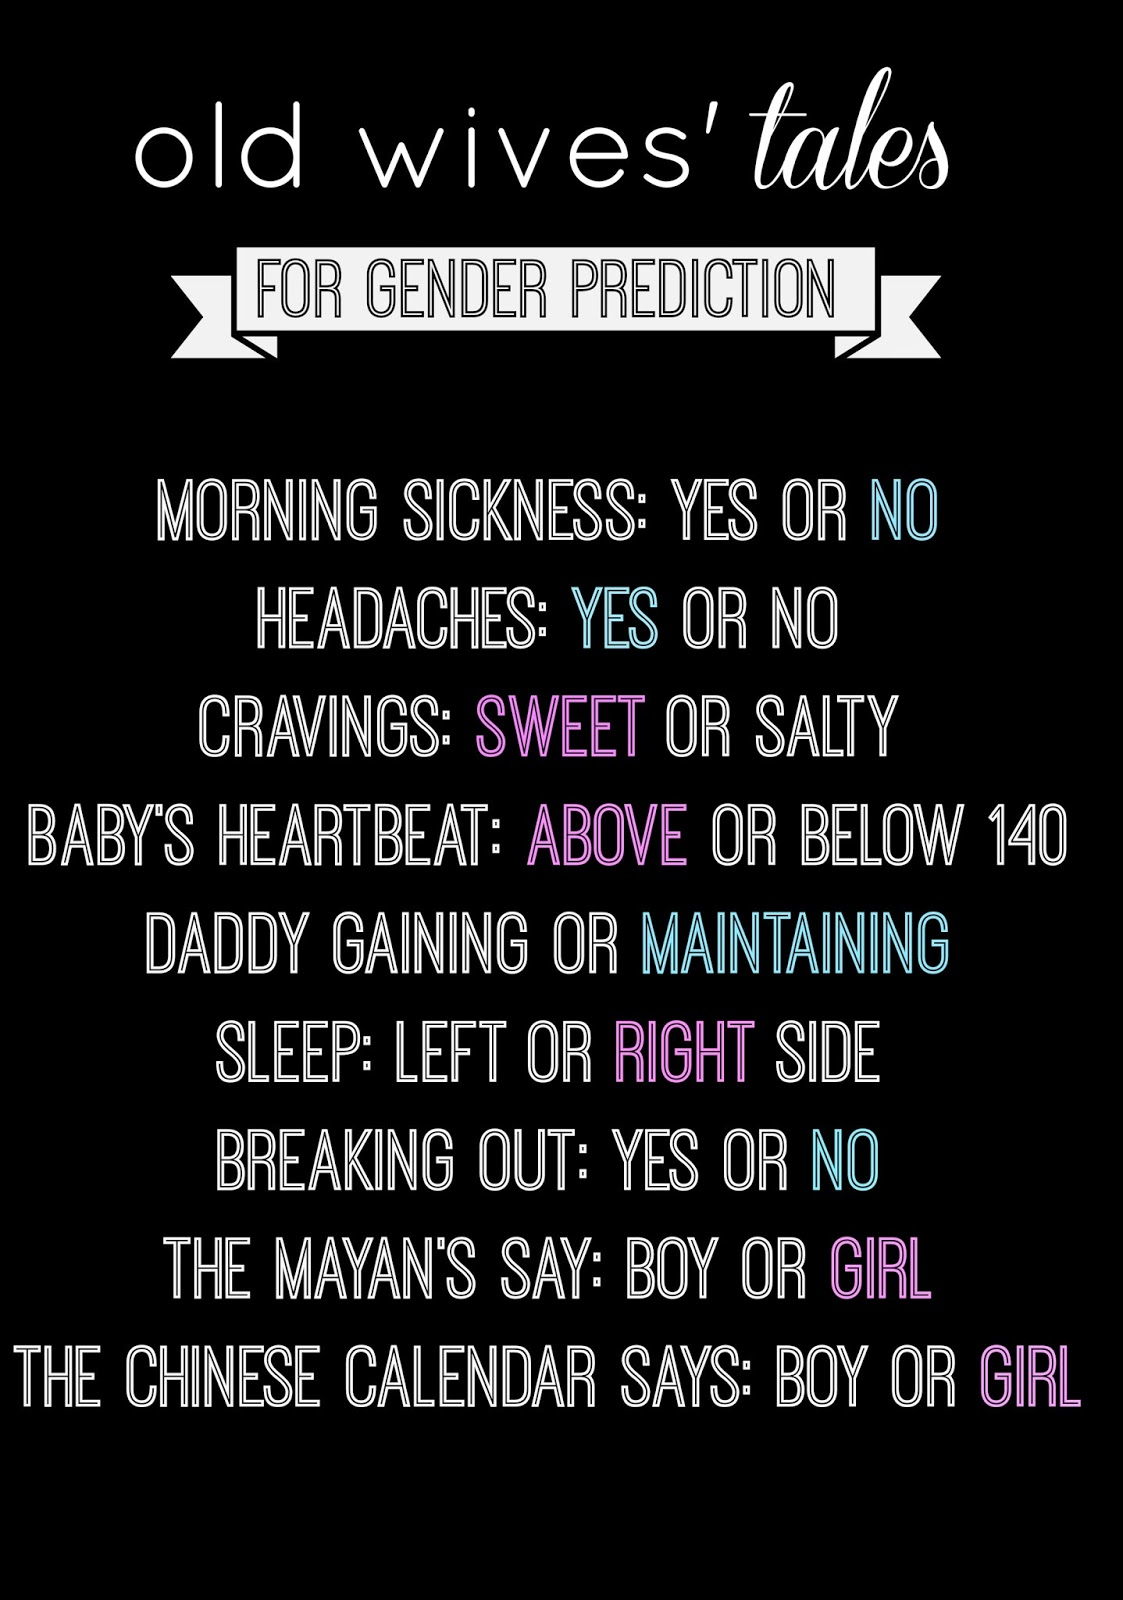 Keep calm and carry on baby k boy or girl i still wanted to take a look at how they match up with my pregnancy and share today since we find out baby ks gendermorrow nvjuhfo Choice Image